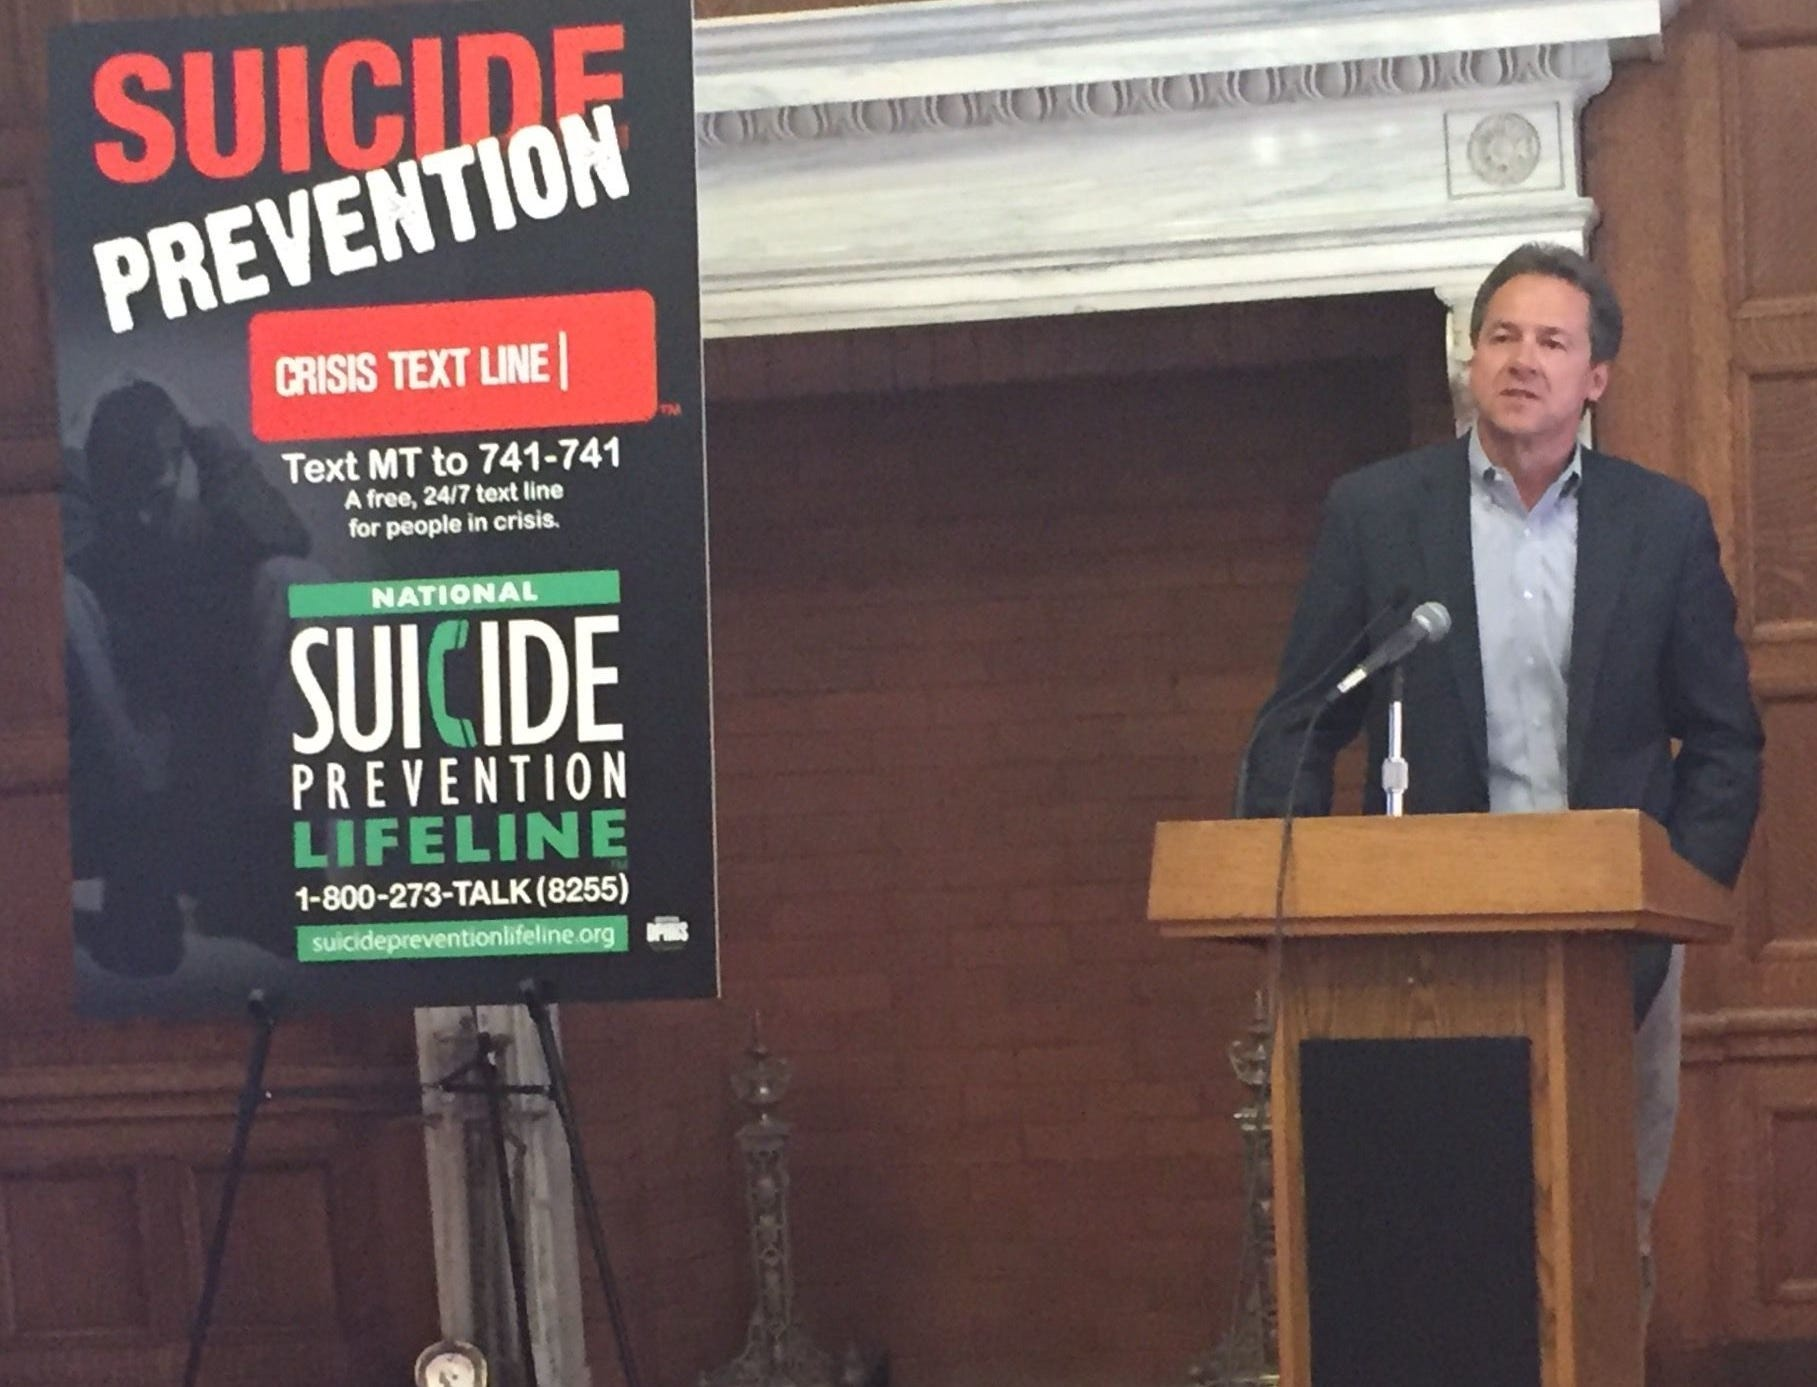 Tribune photo/Phil Drake Gov. Steve Bullock helps unveil a media campaign on Wednesday to raise awareness about suicide in Montana. Gov. Steve Bullock helps unveil a media campaign on Wednesday to raise awareness about suicide in Montana.